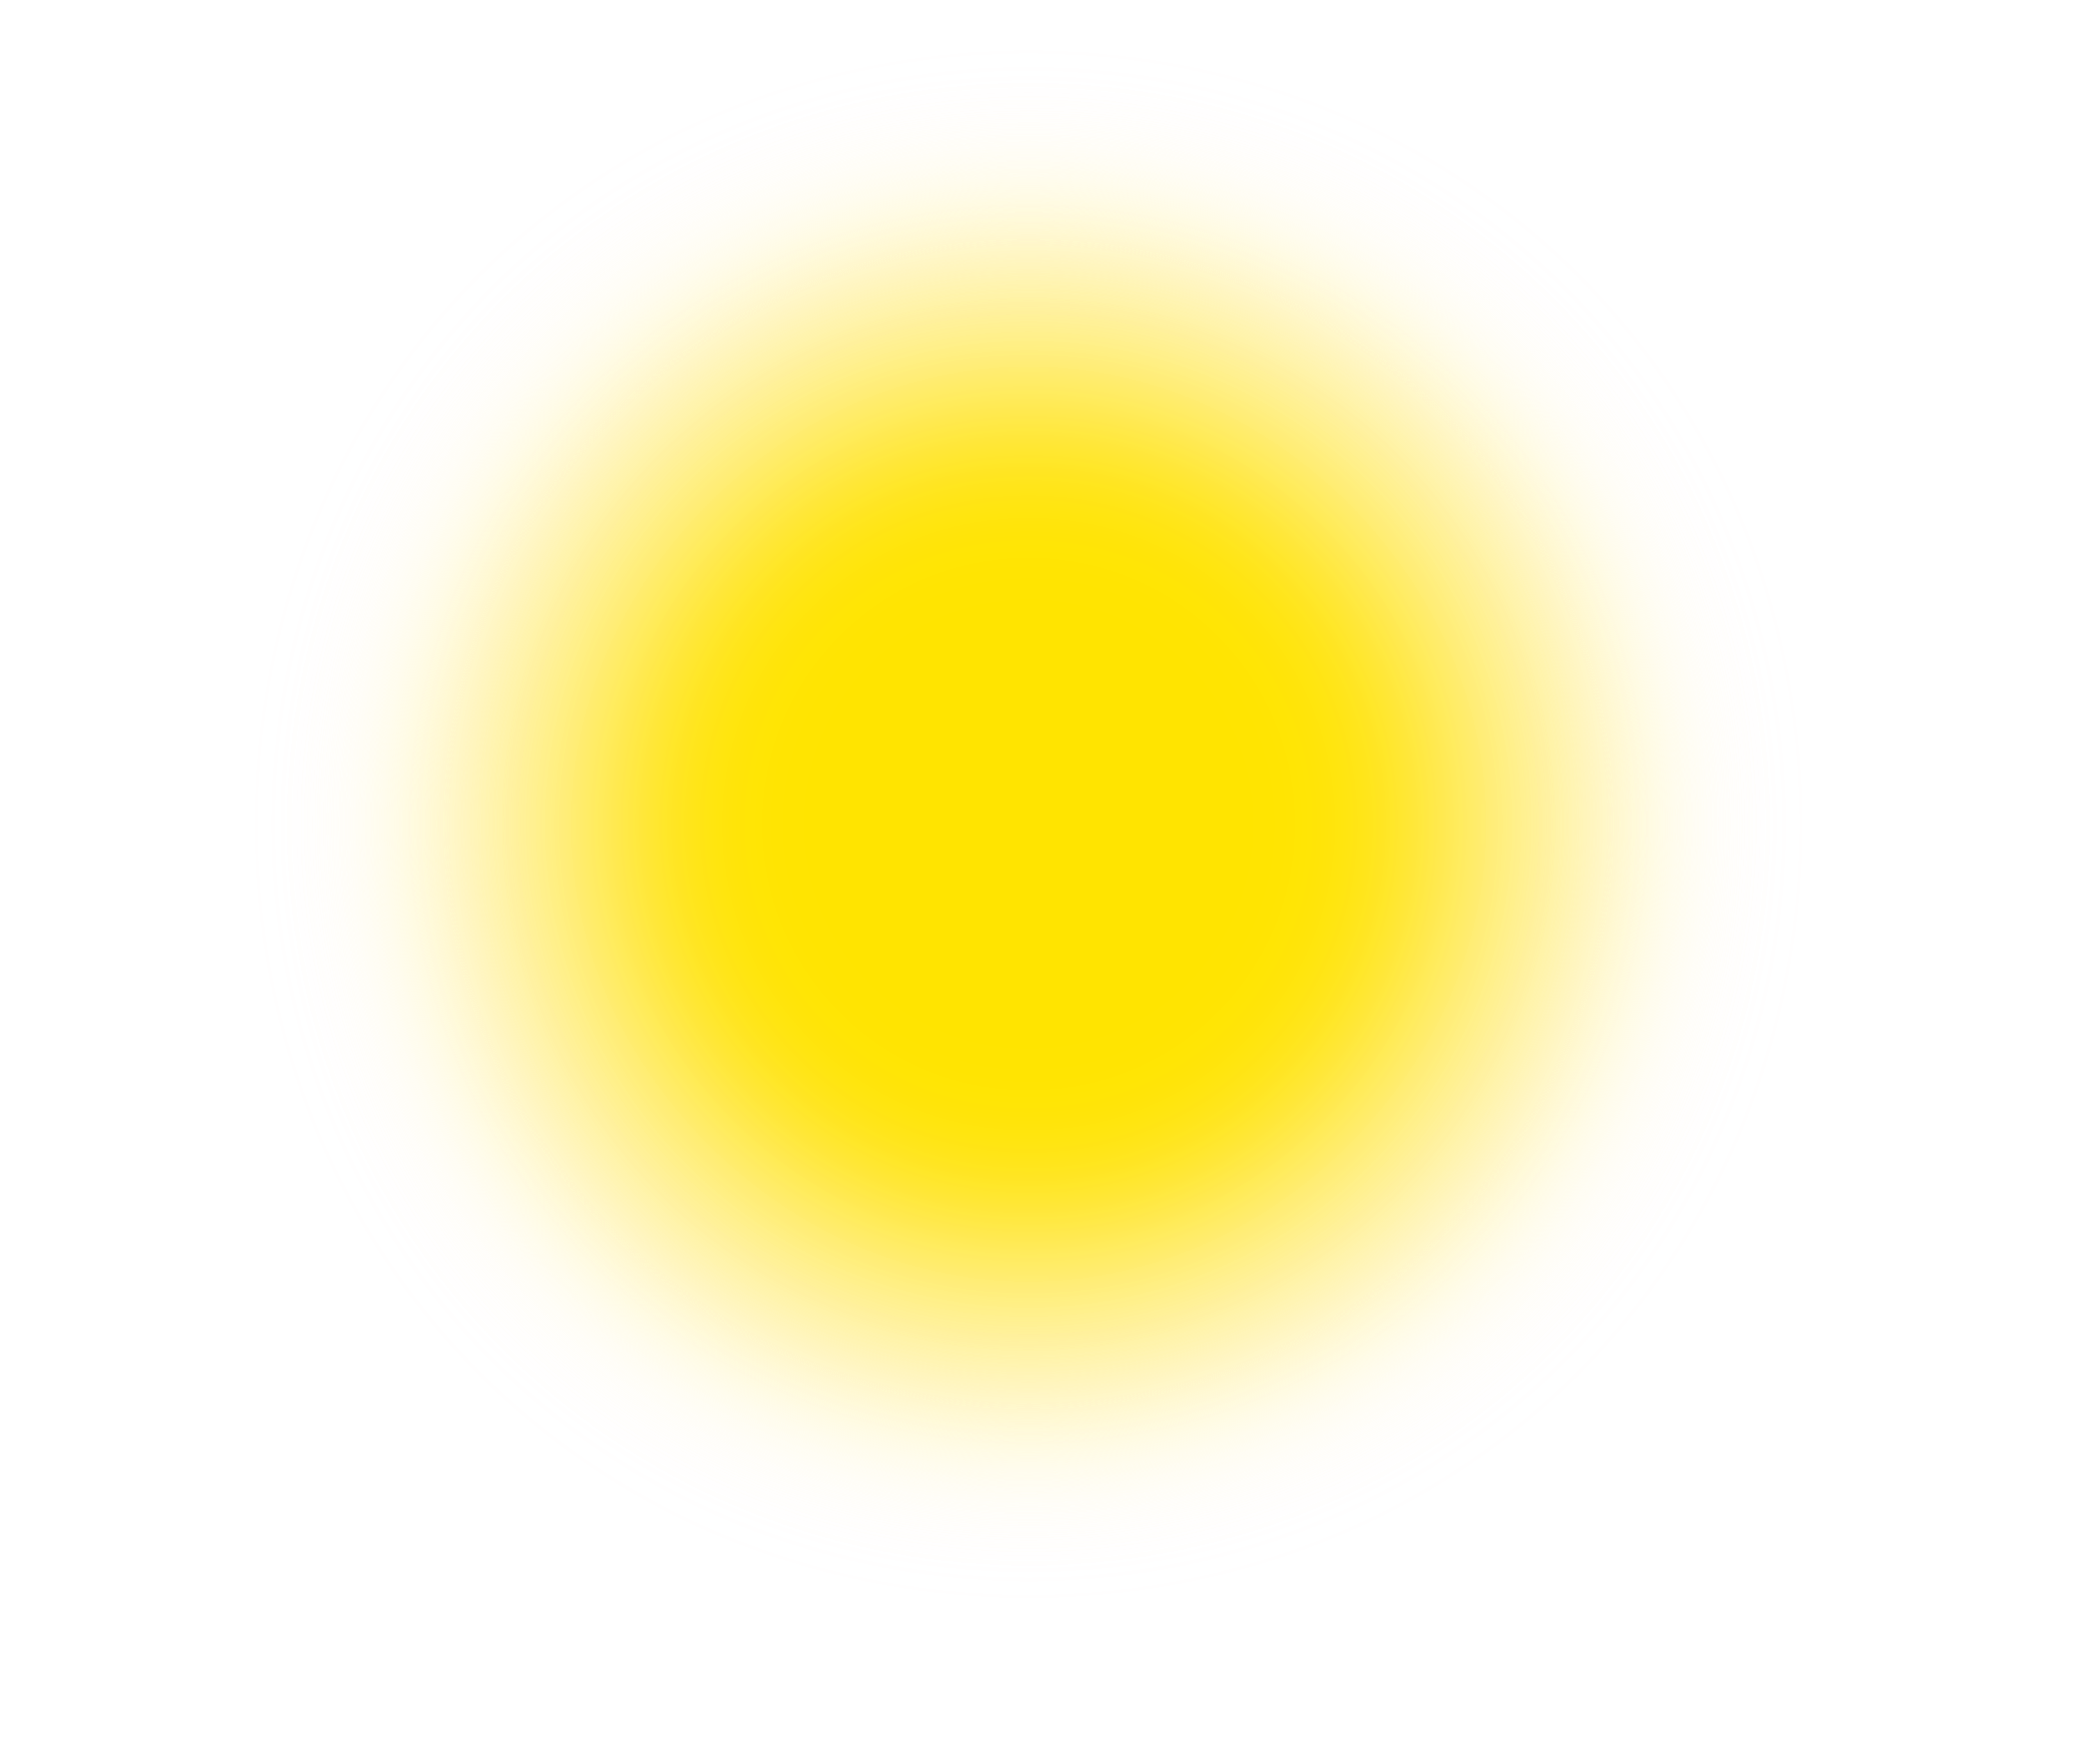 Moon clipart yellow. Transparent sun png picture